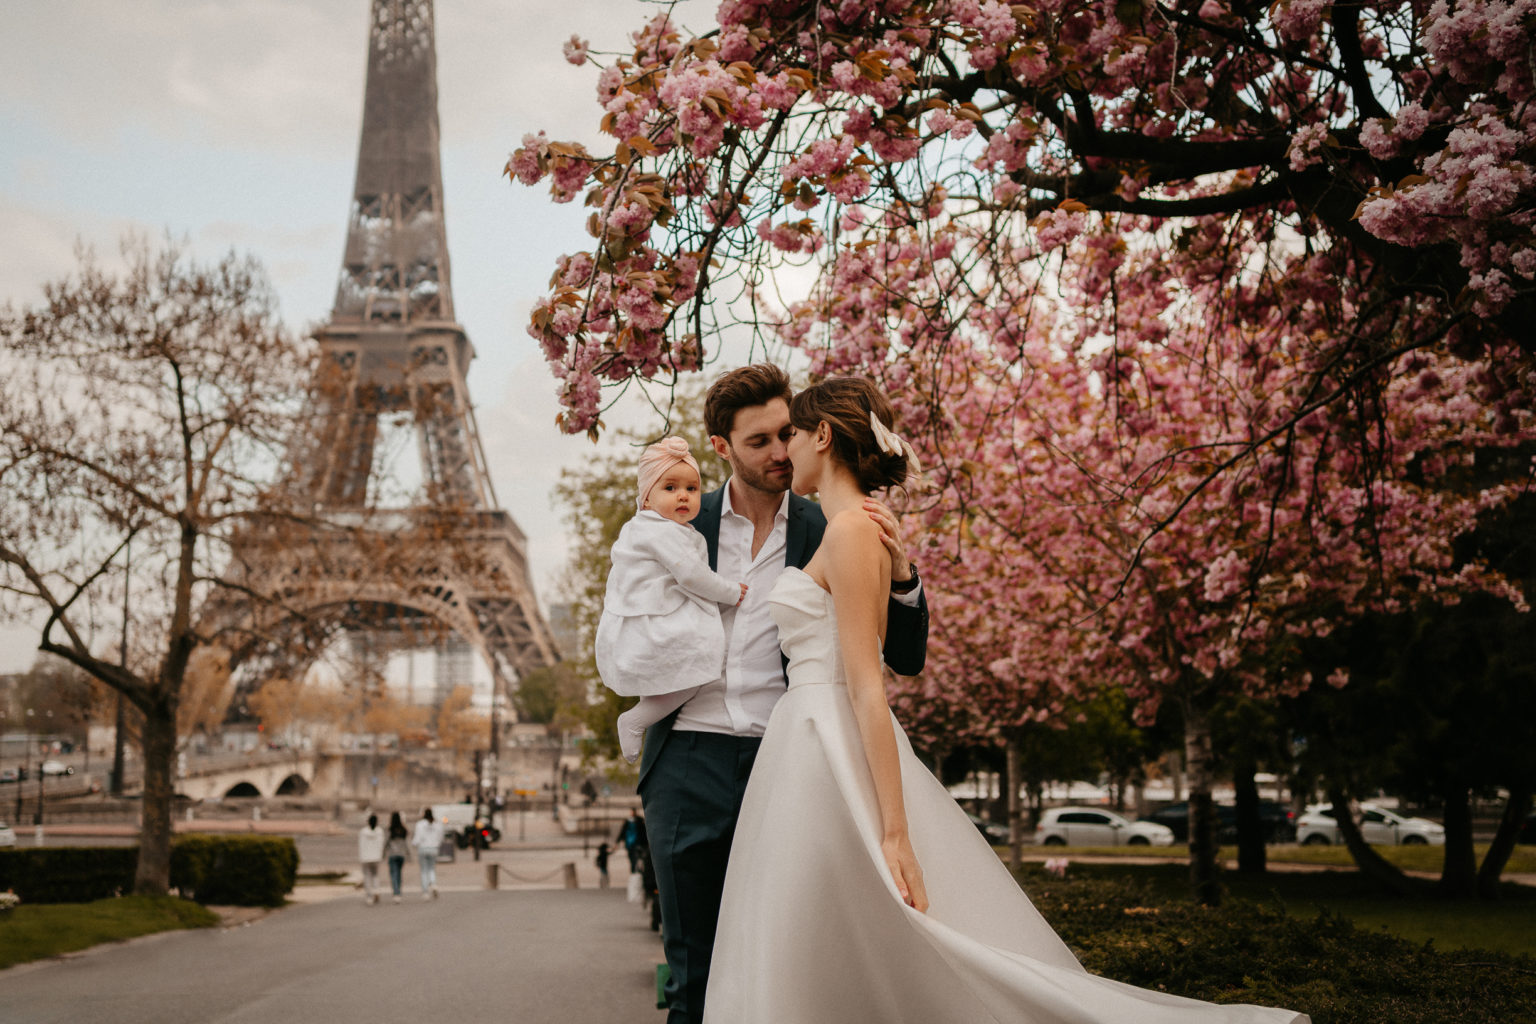 family portrait by tour eiffel and cherry blossom